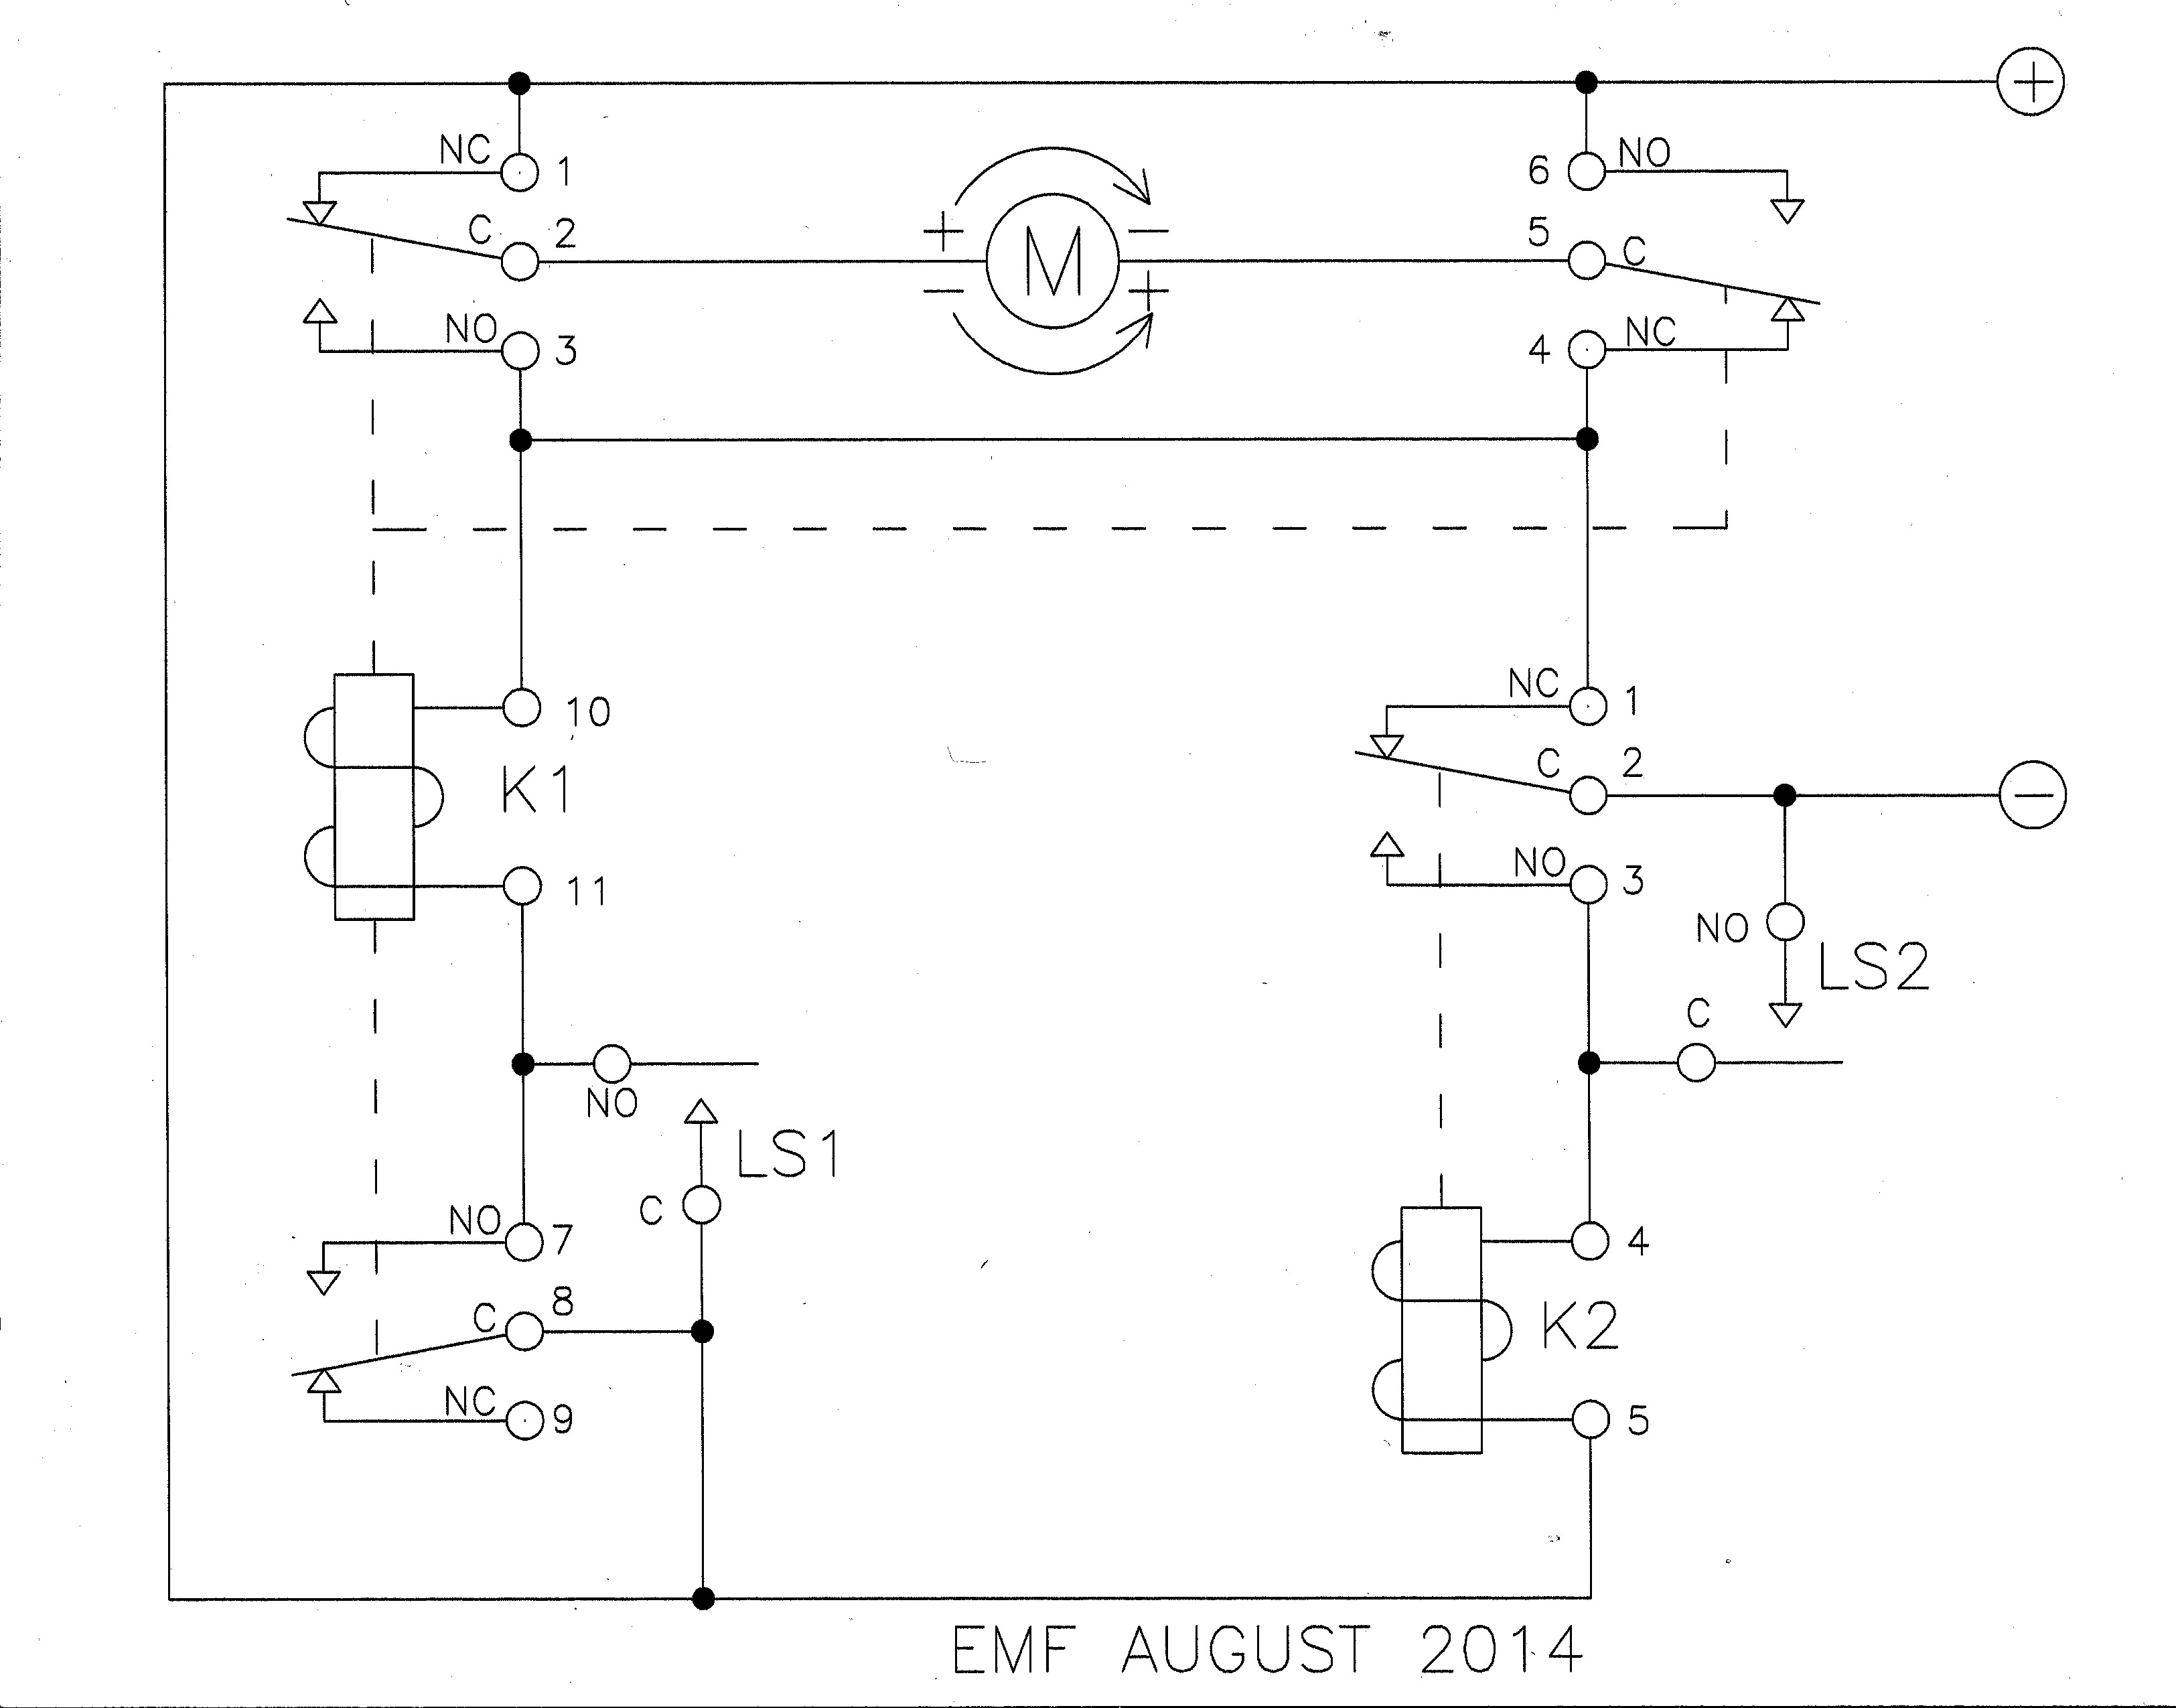 Fantastic Reversing Switch Wiring Diagram Collection - Electrical ...